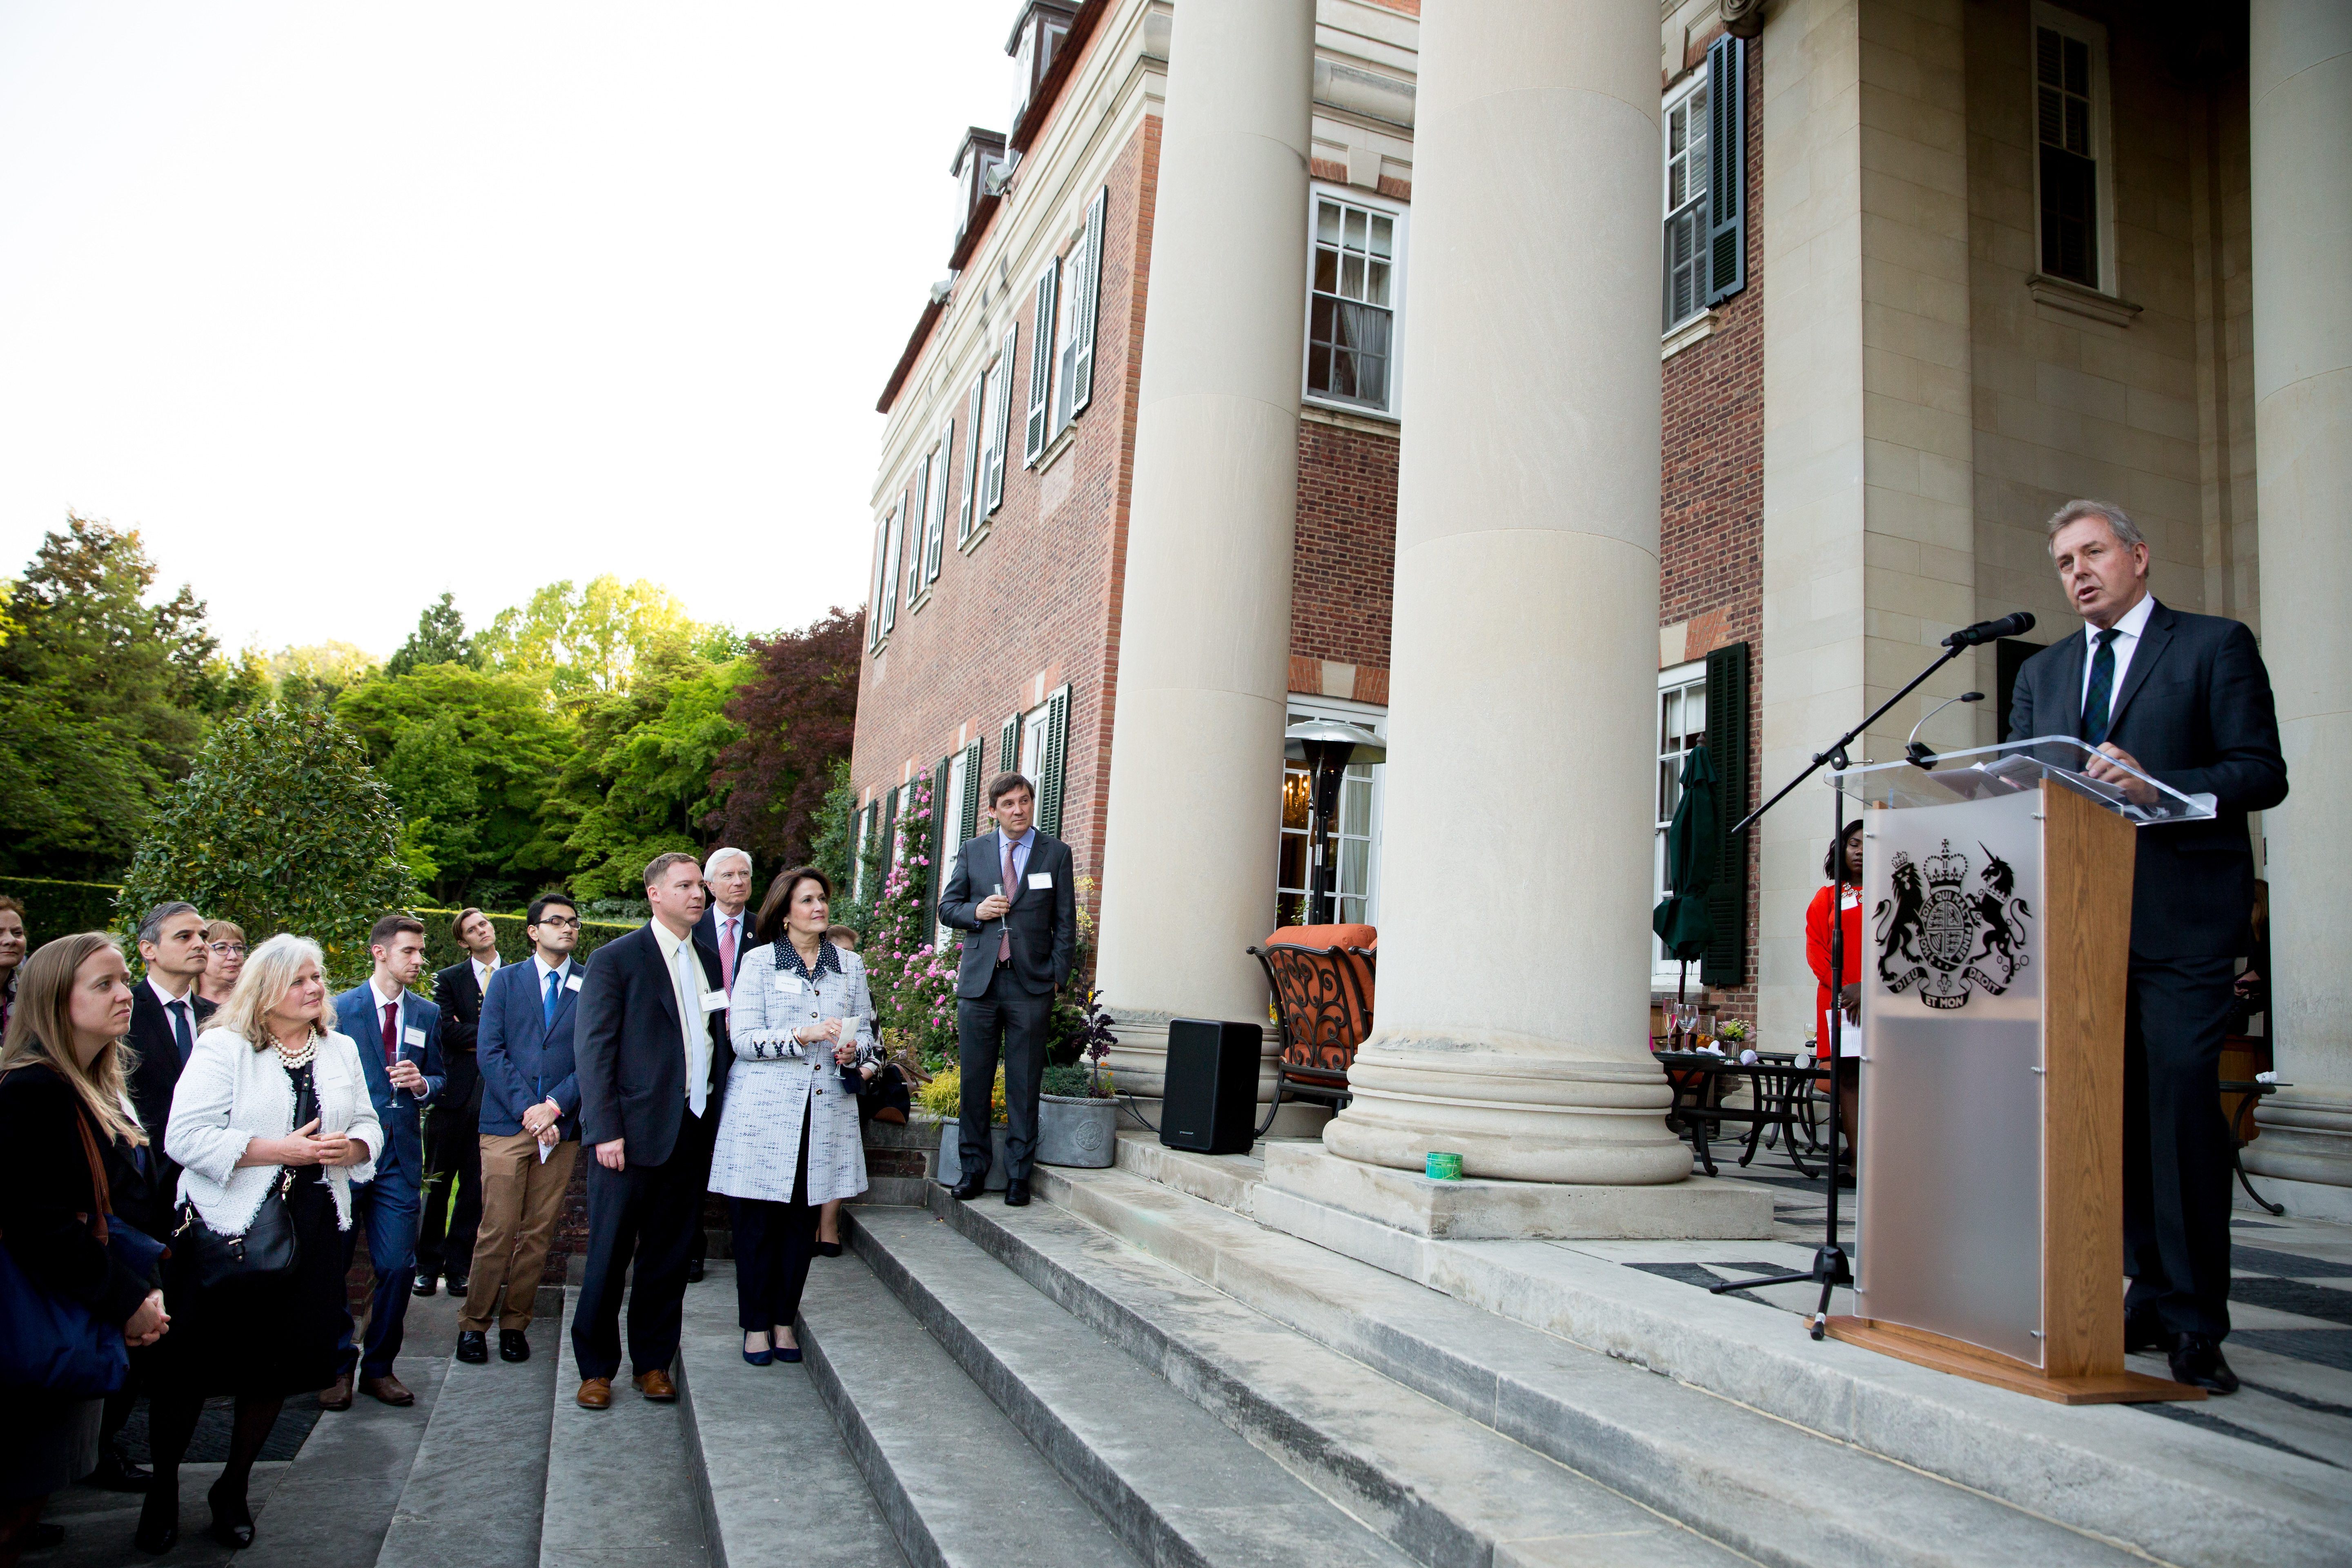 Ambassador Kim Darroch welcomed current Fulbrighters and alumni, along with representatives and supporters of Fulbright